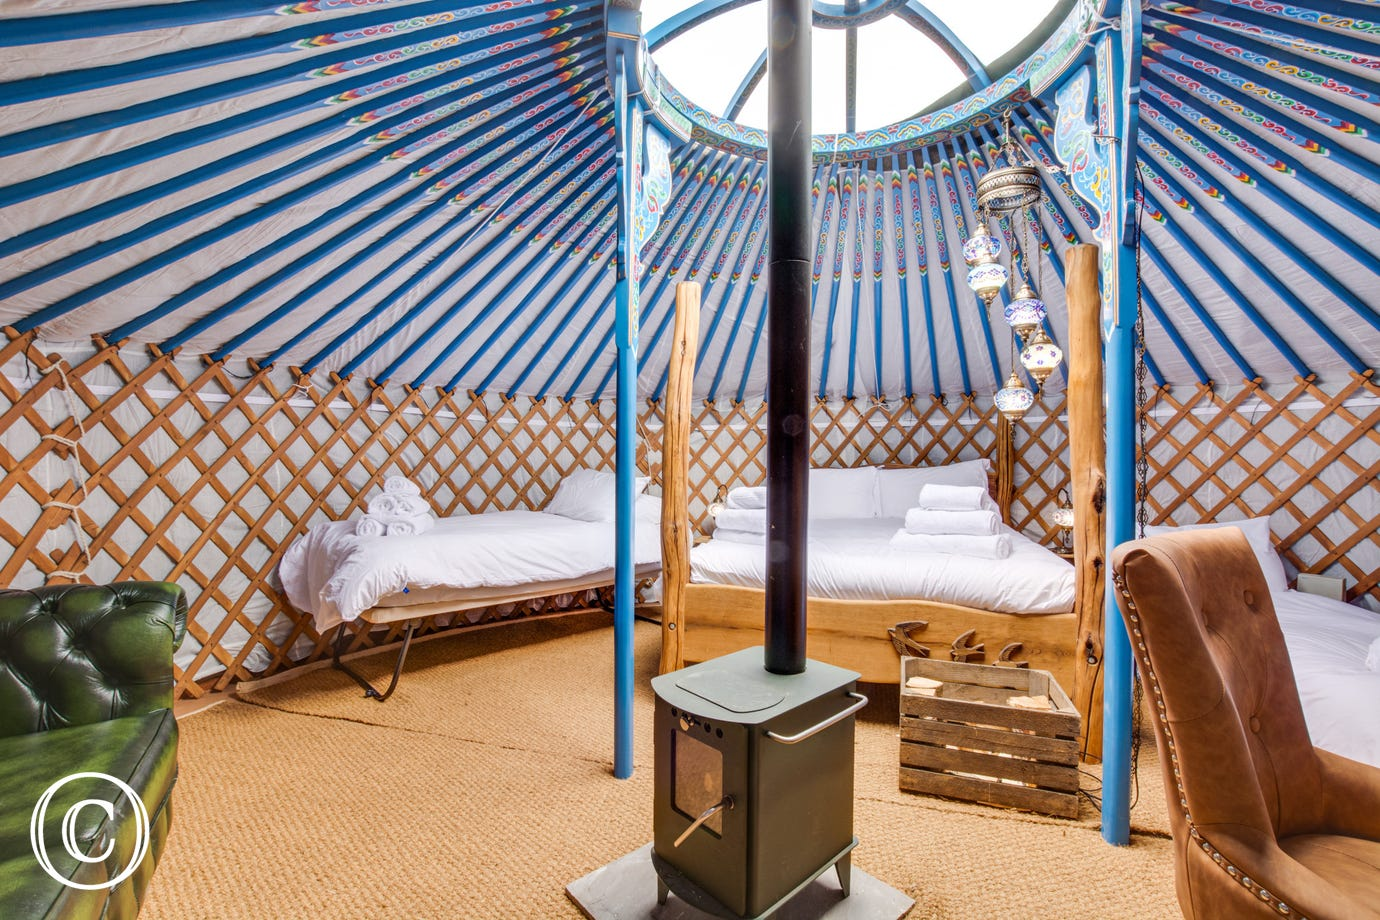 King-size bed at Swallow Yurt